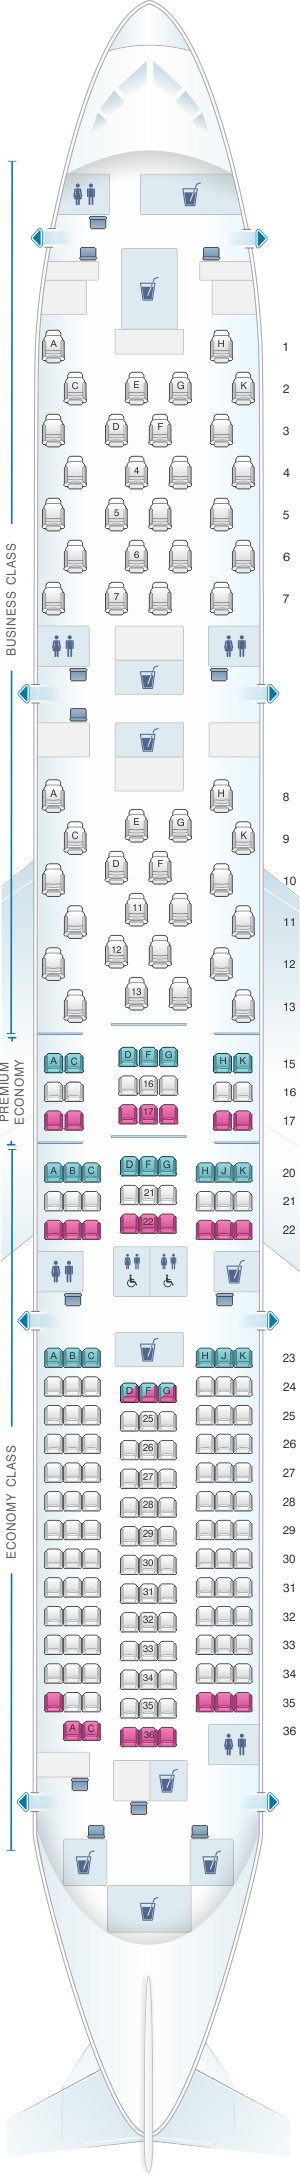 Seat map for ANA - All Nippon Airways Boeing B787-9 215pax